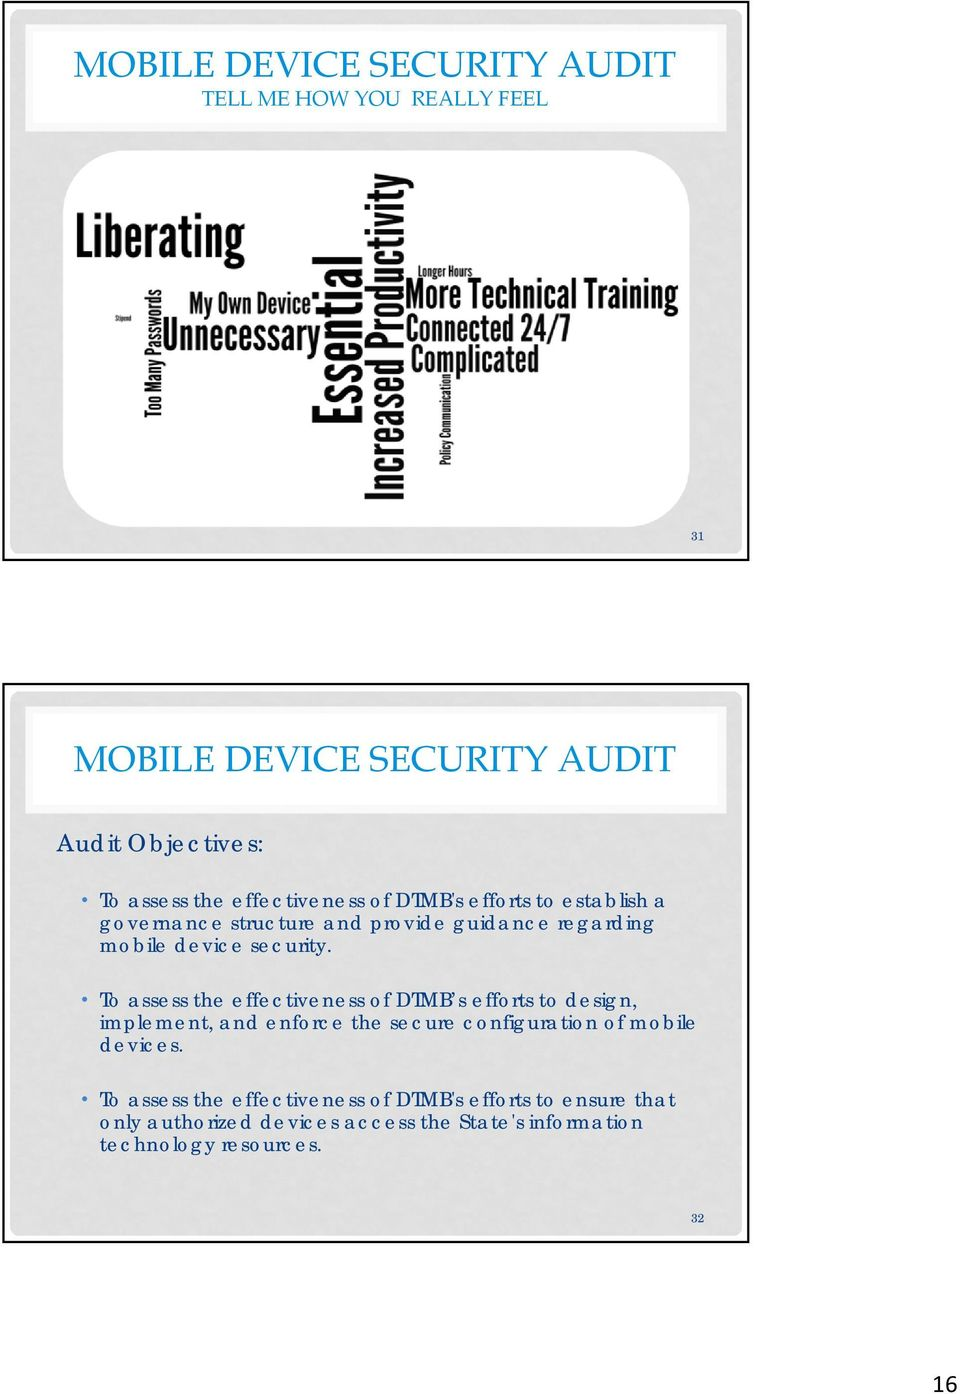 To assess the effectiveness of DTMB s efforts to design, implement, and enforce the secure configuration of mobile devices.